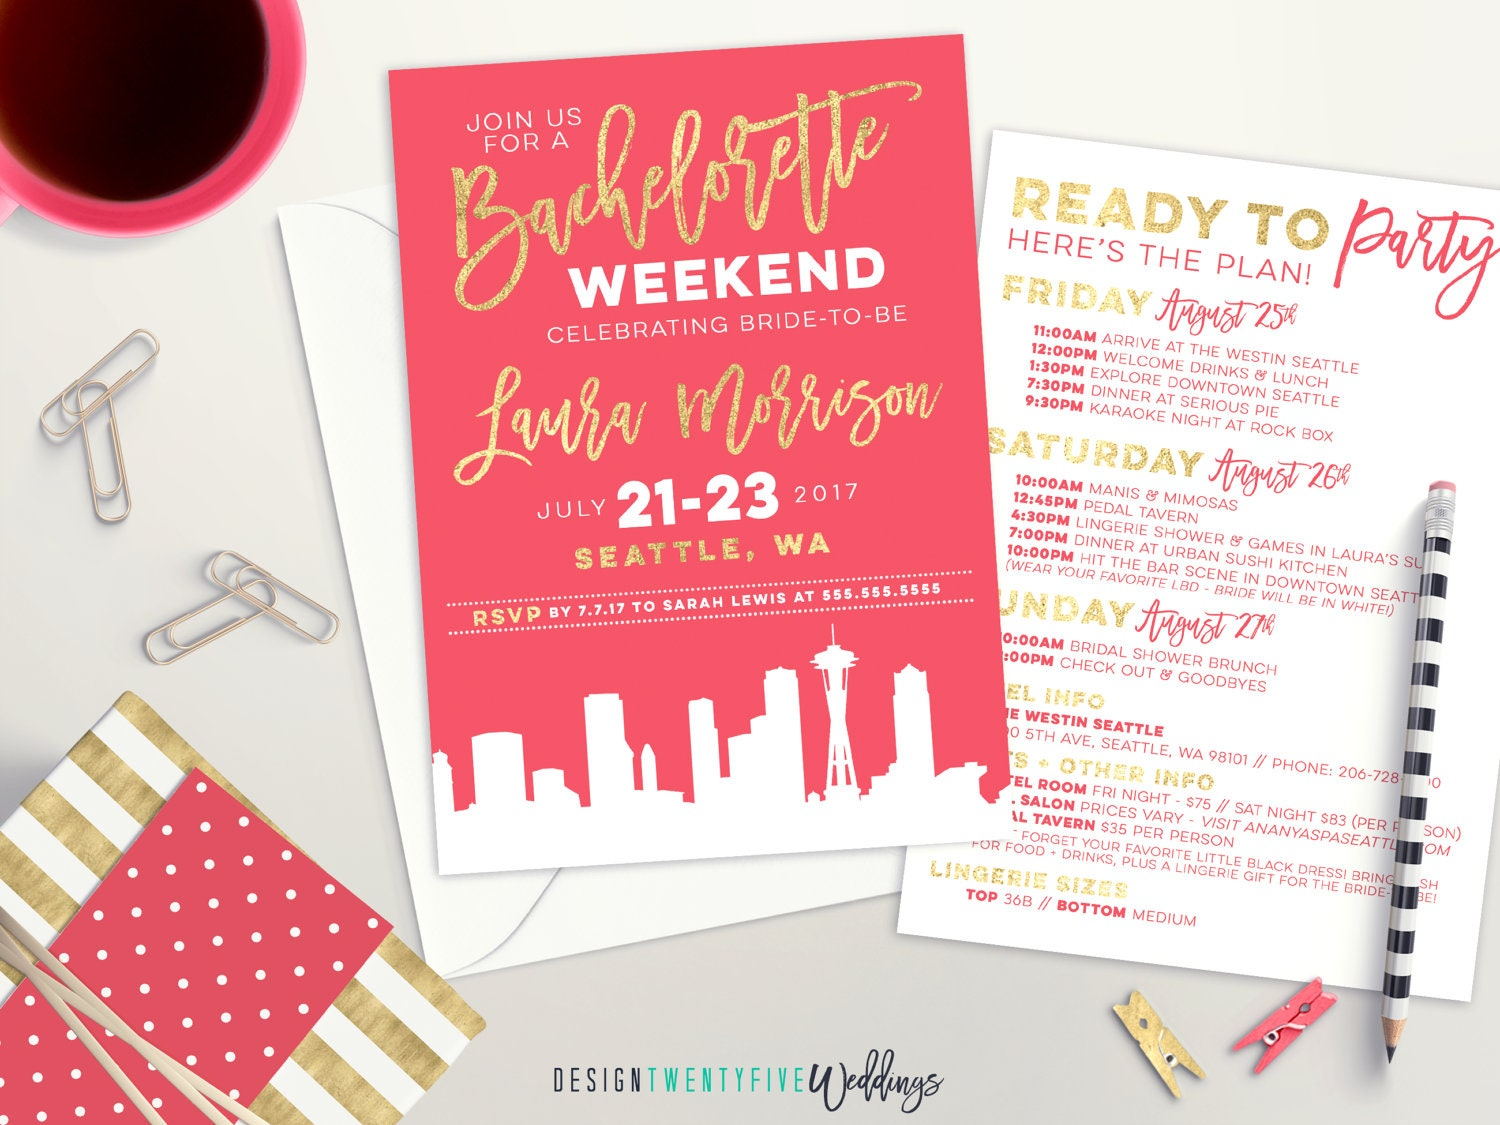 City Skyline Bachelorette Party Invite Pink and Gold Bridal | Etsy